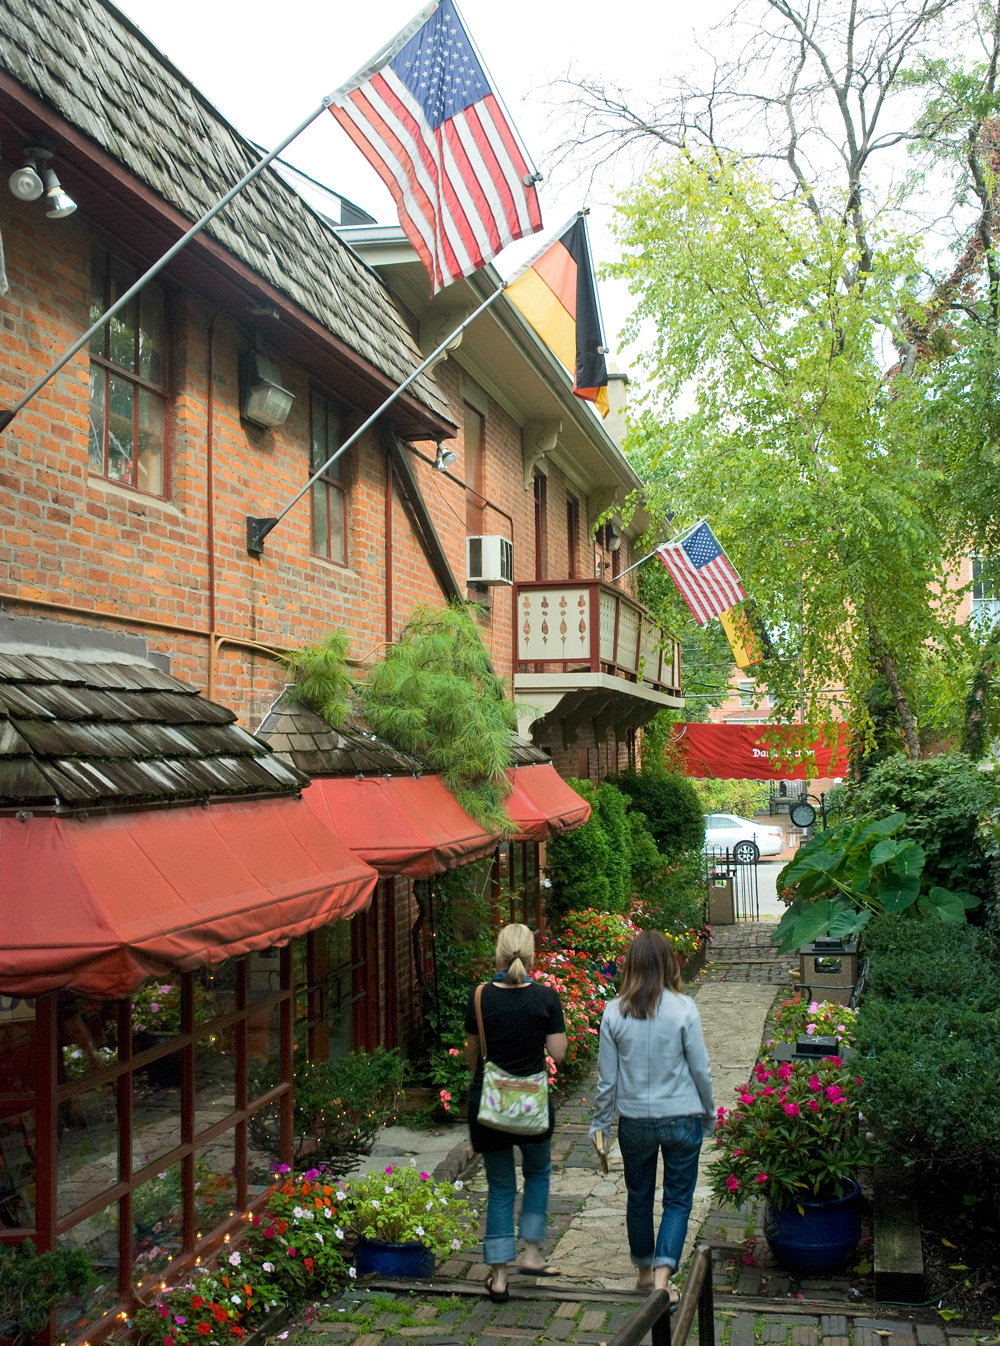 German Village: Picturesque enclave